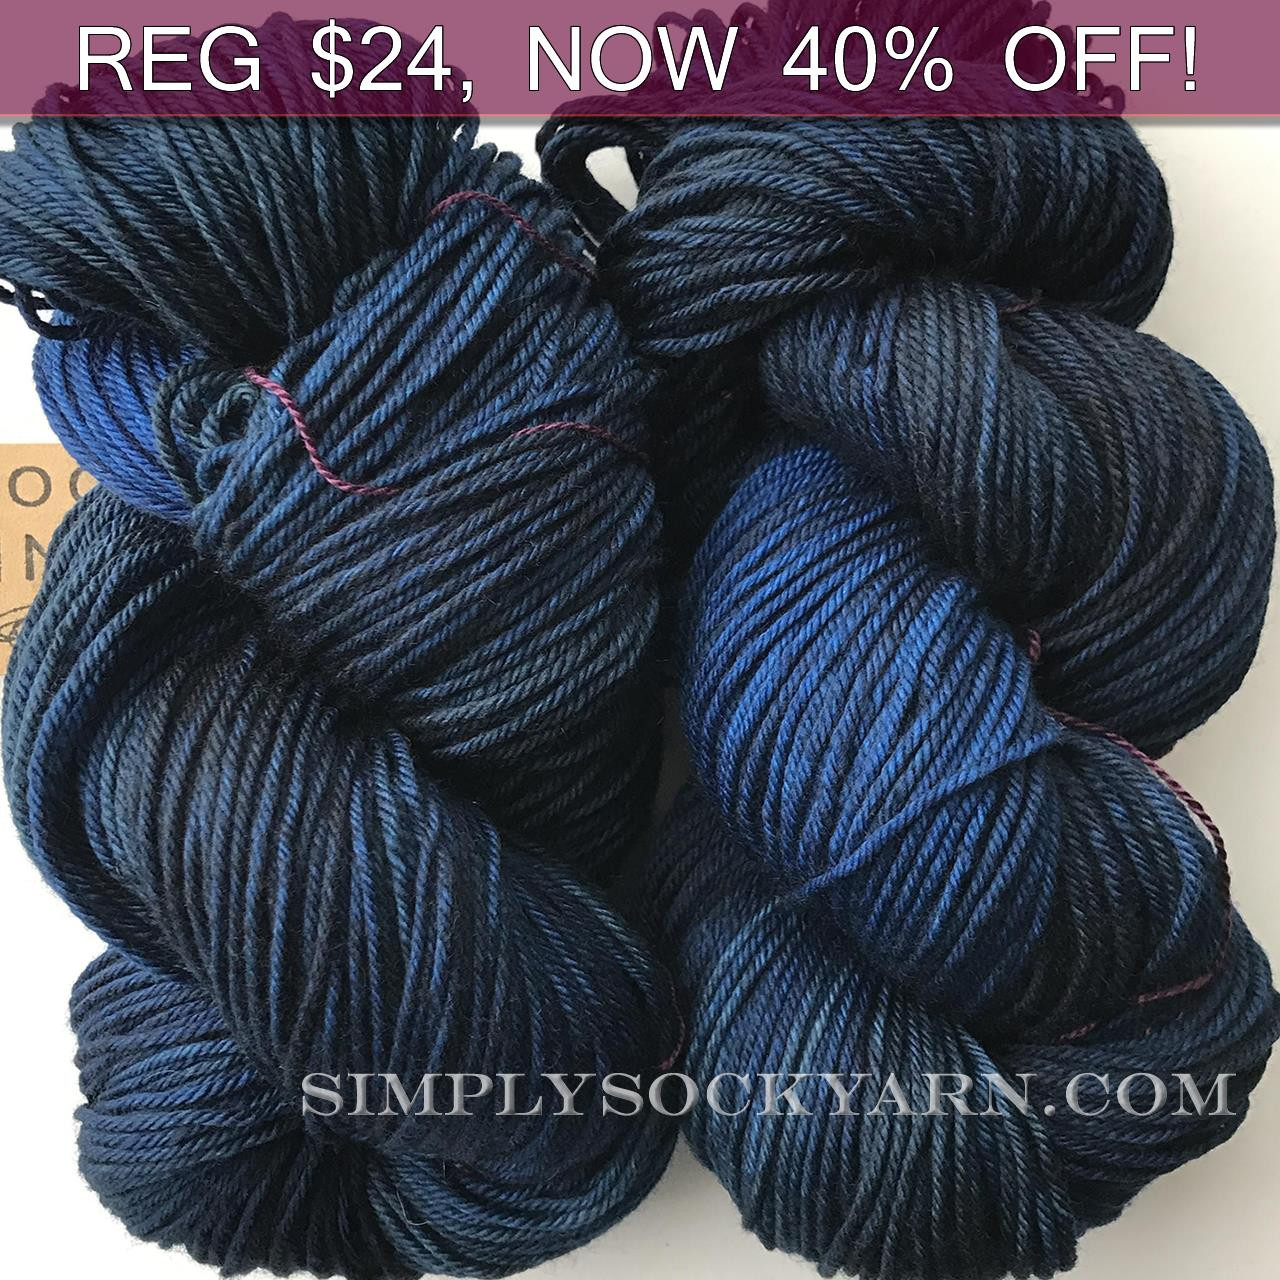 MWP Lt Worsted Arctic Ocean -